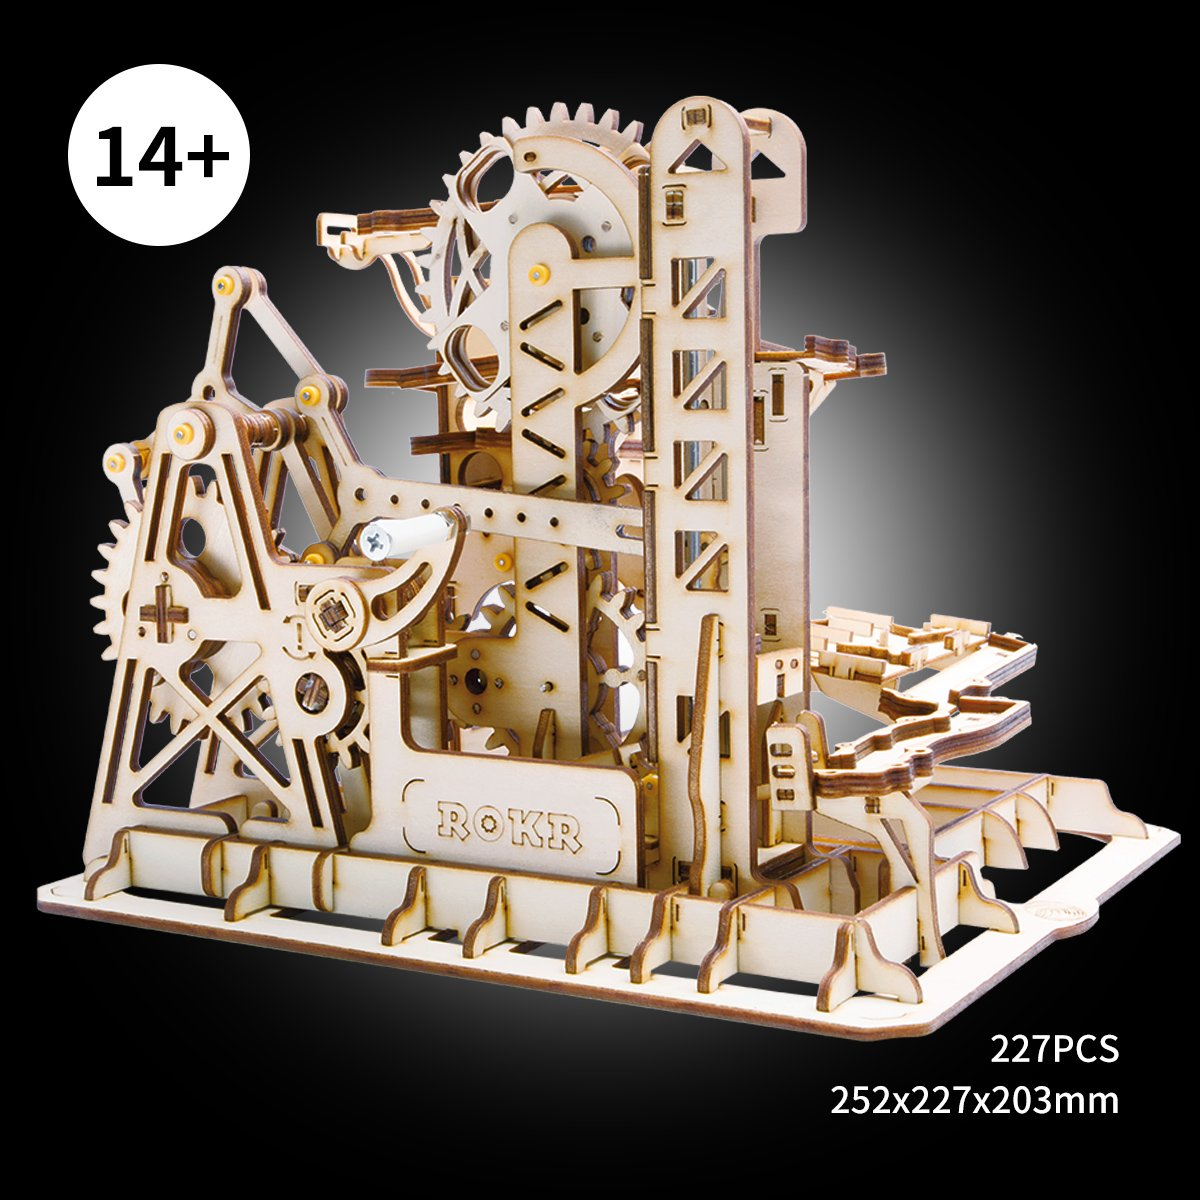 ROBOTIME 3D Wooden Puzzle Brain Teaser Toys Mechanical Gears Kit Unique Craft Kits Tower Coaster with Steel Balls Executive Desk Toys Best Gifts for Adults and Kids by ROBOTIME (Image #2)